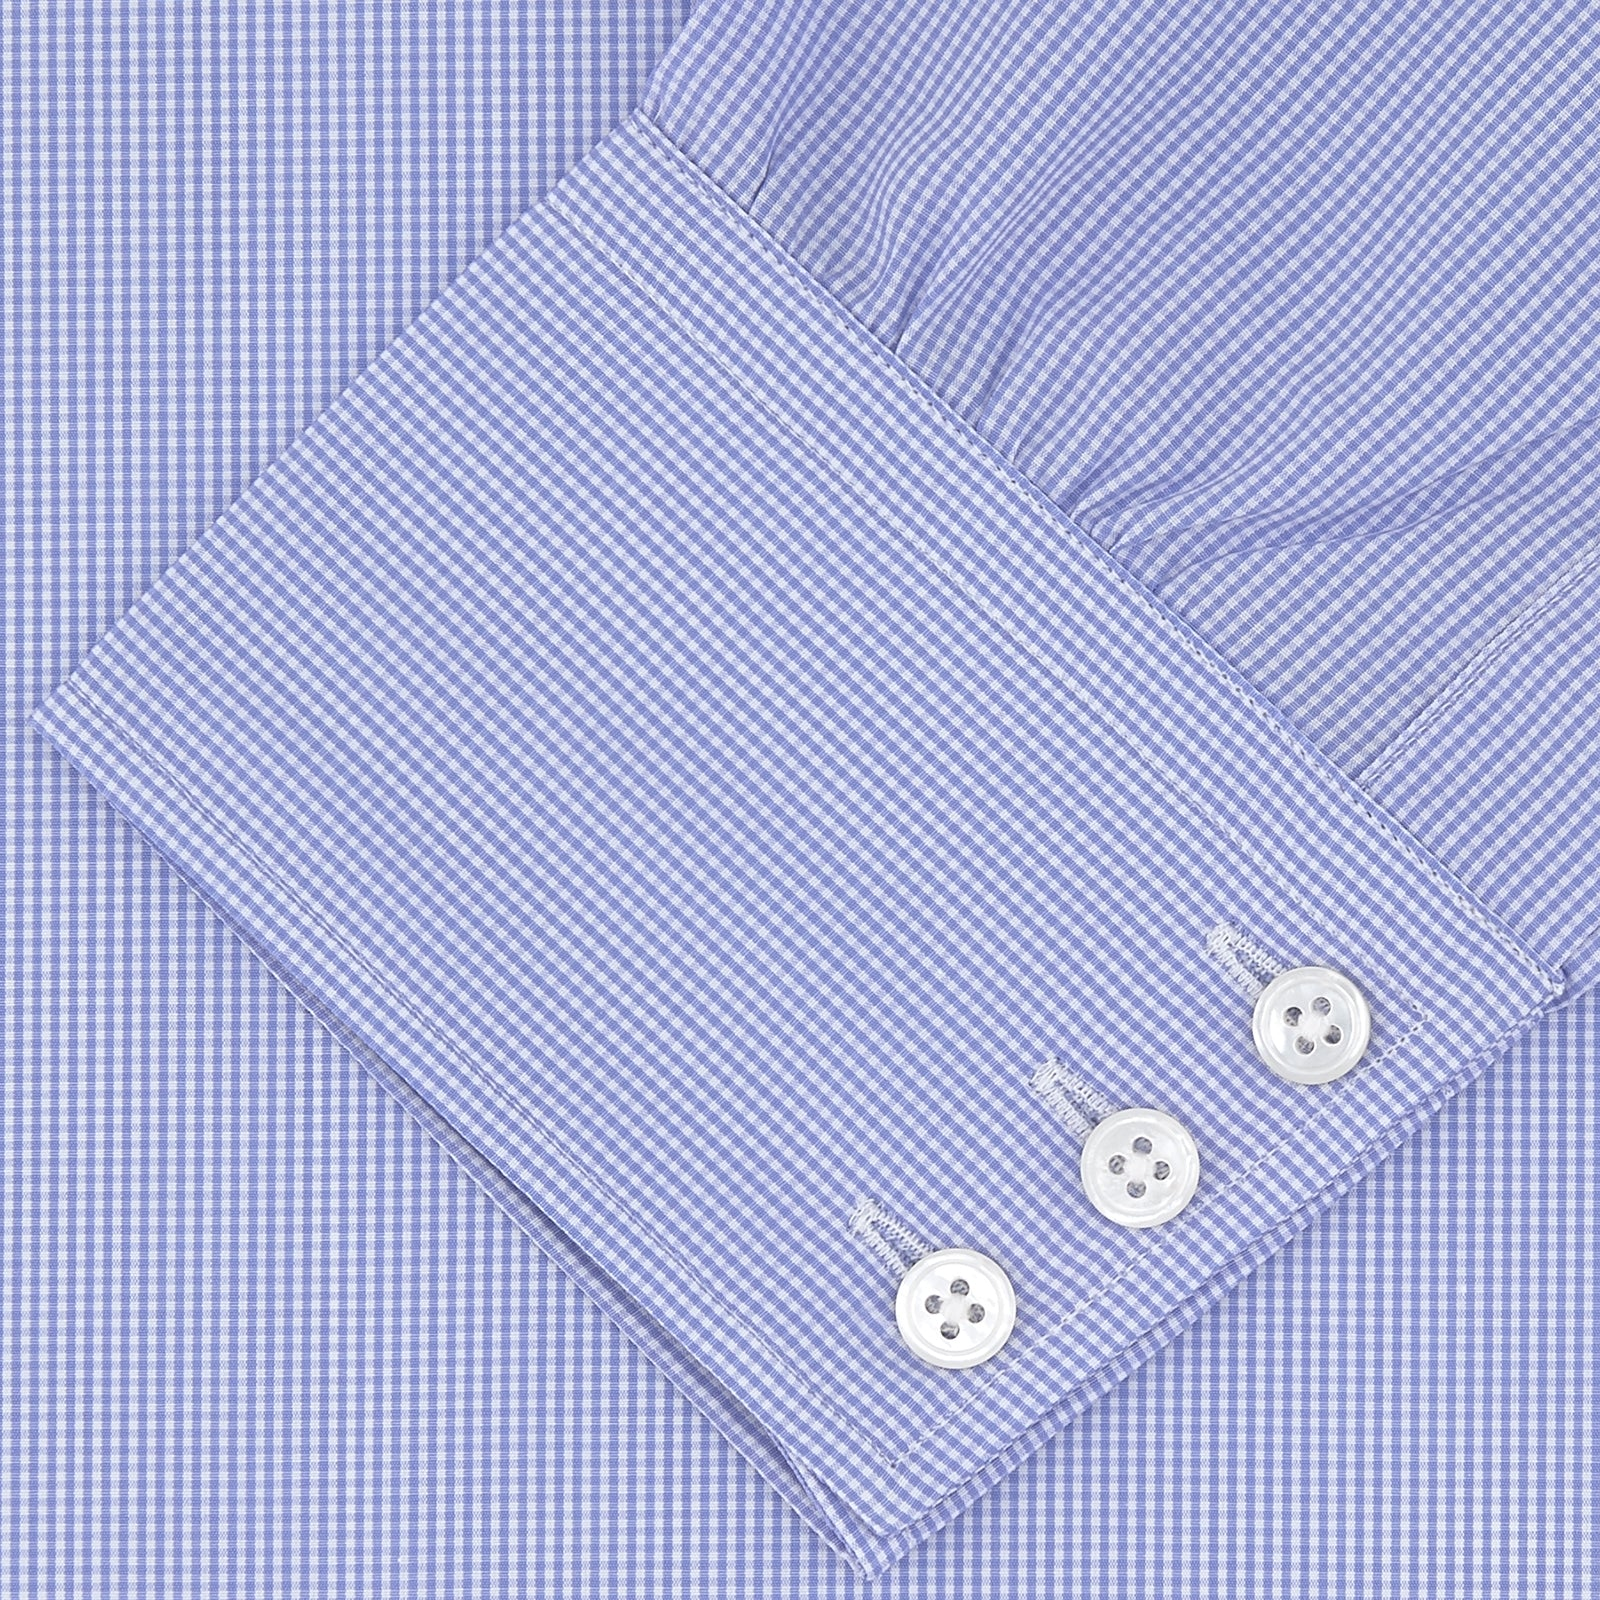 Blue Fine Check Sea Island Quality Cotton Shirt with Regent Collar and 3-Button Cuffs